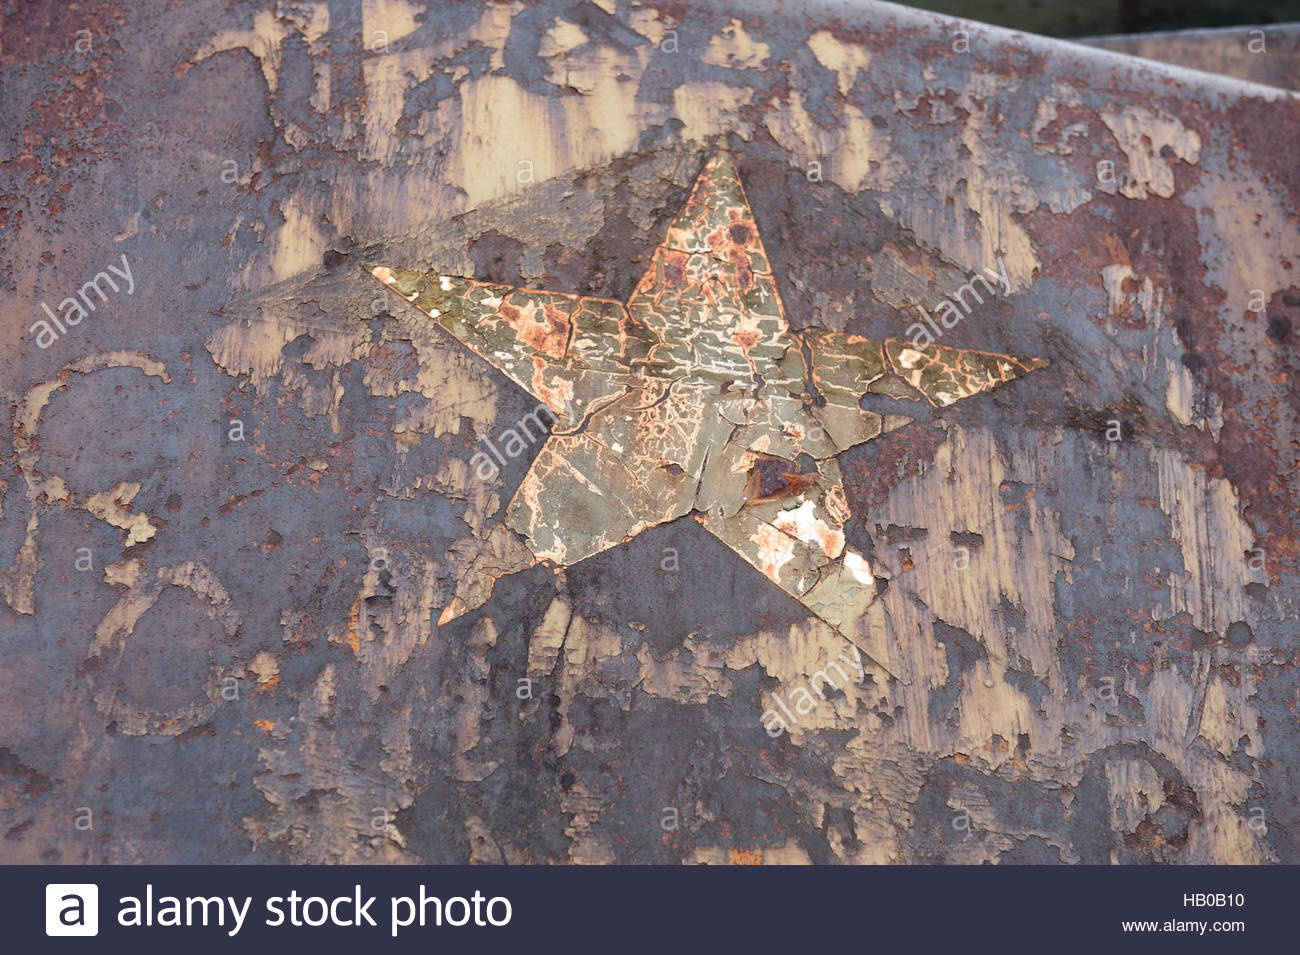 Hue Vietnam General Museum Complex. Rusting US weapons from the American War. Rusting star logo. - Stock Image